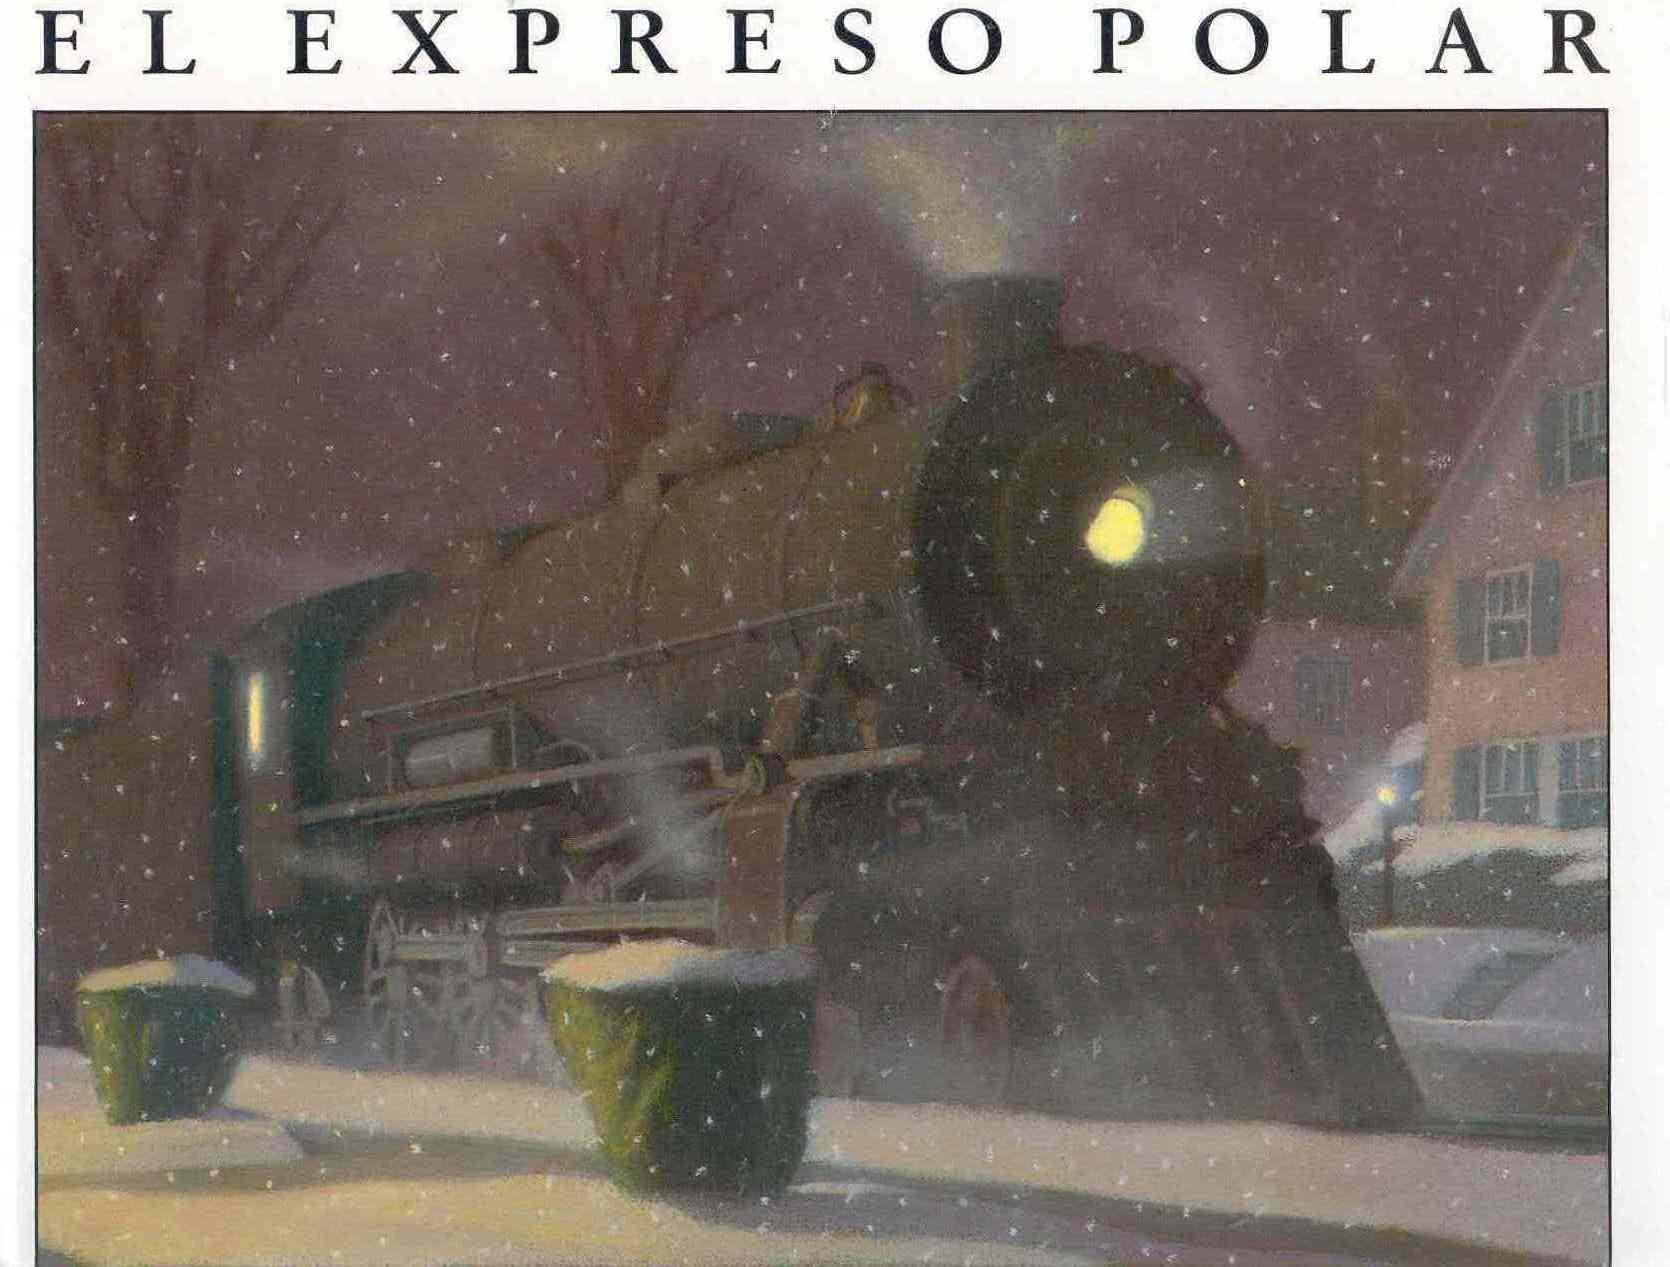 El expreso polar: Chris Van Allsburg: 9789802570461: Amazon.com: Books